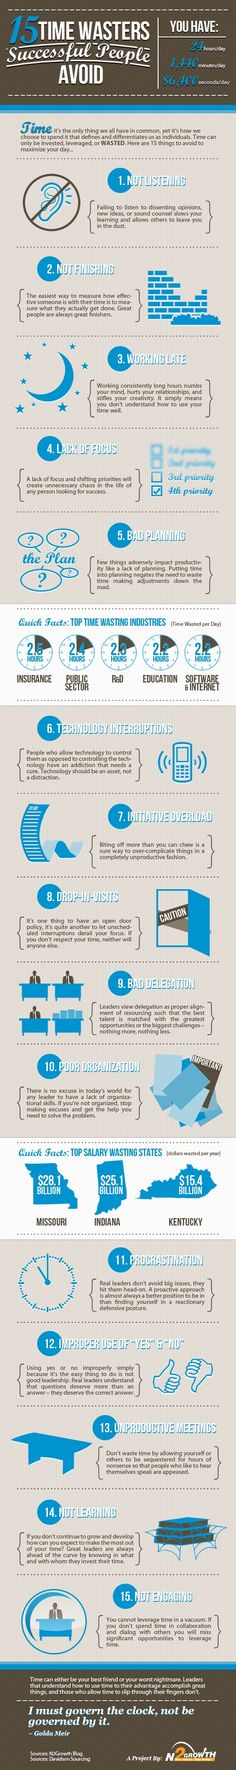 Productivity & Focus - Keys for Business Success. Avoid these 15 time wasters.